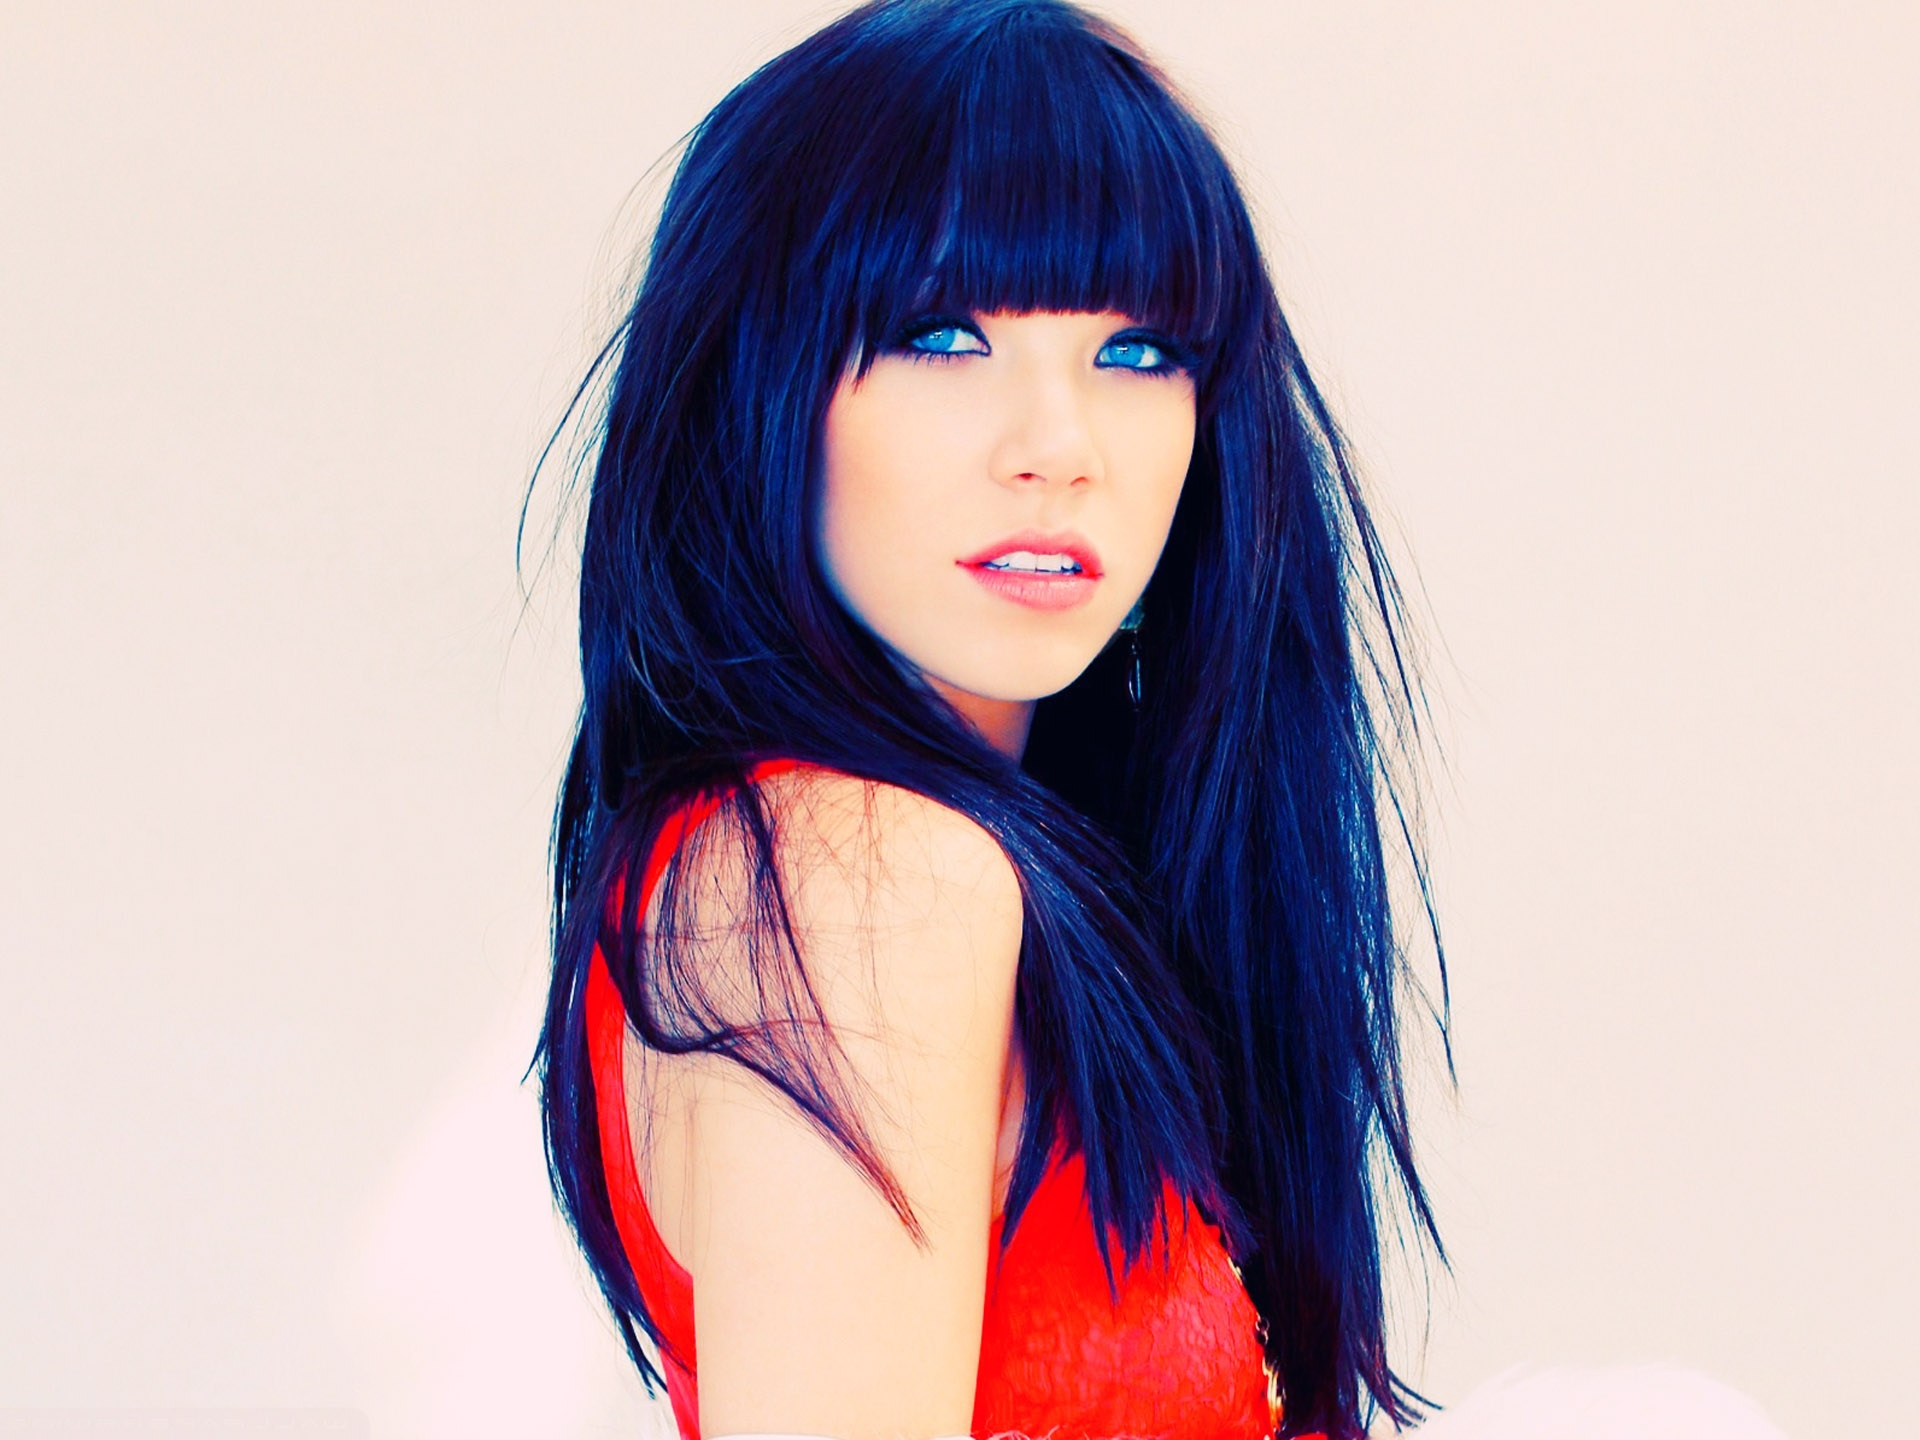 Carly Rae Jepsen Dark Blue Long Hair with Bangs